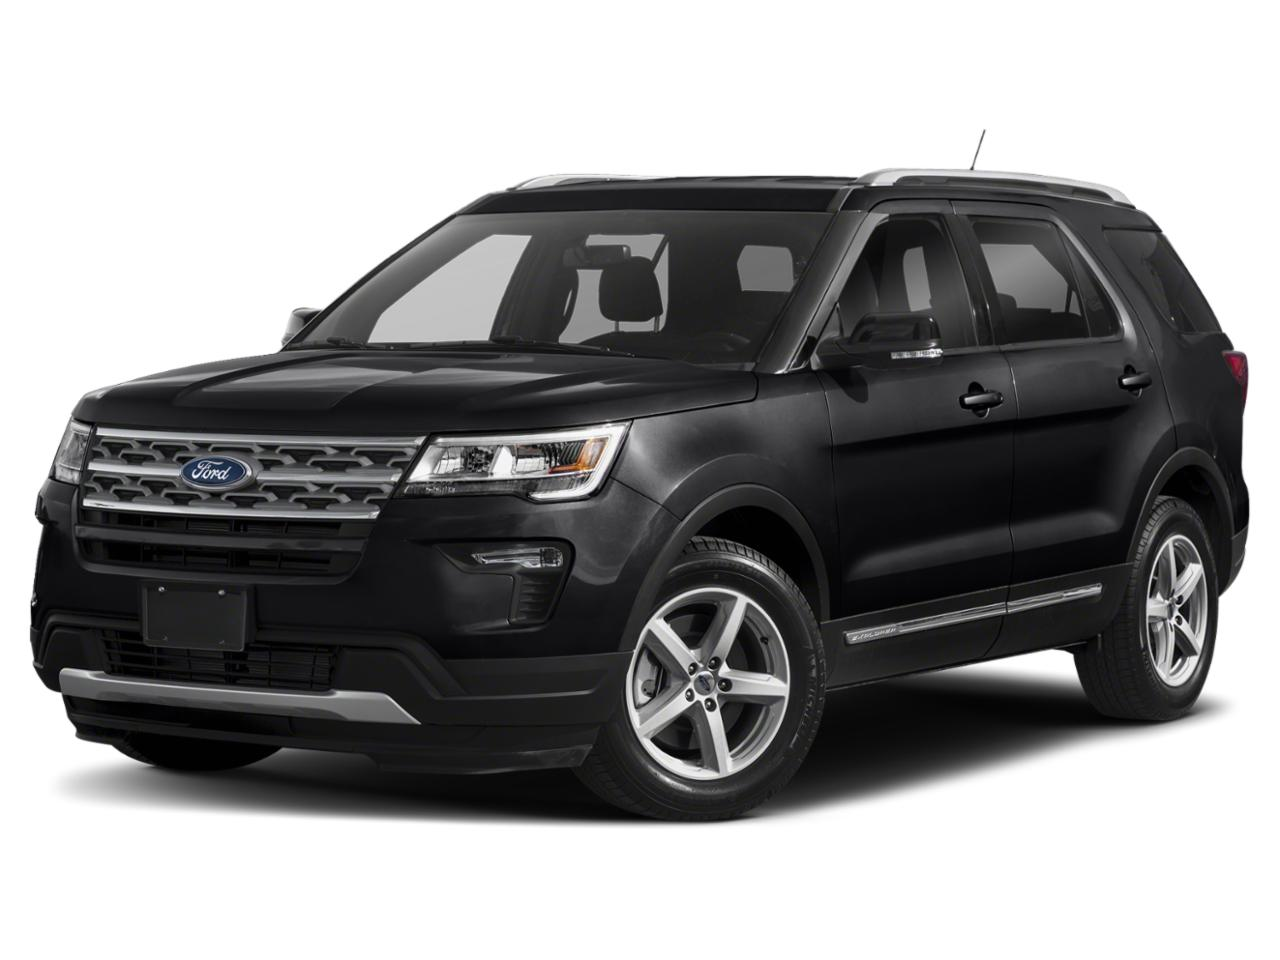 2018 Ford Explorer PLATINUM SUV Slide